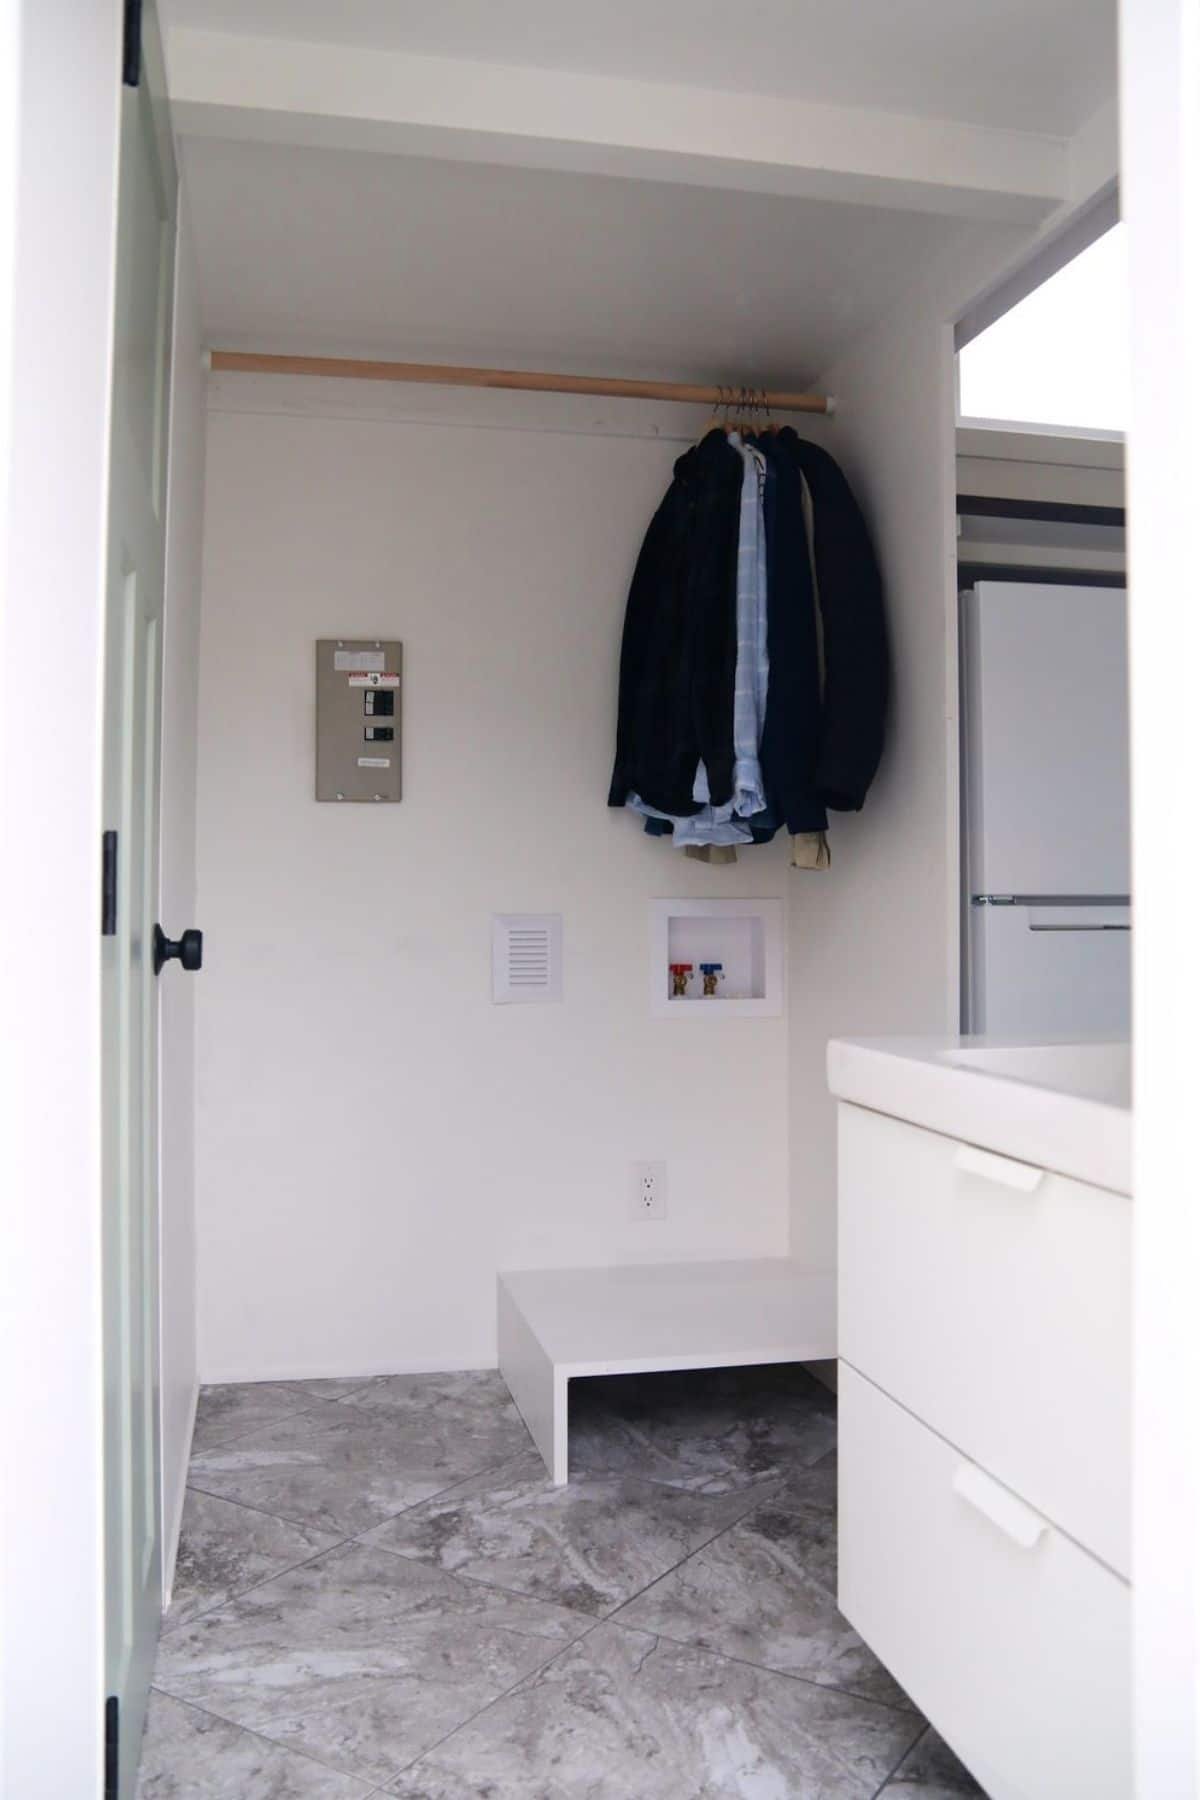 Closet with clothes on rod